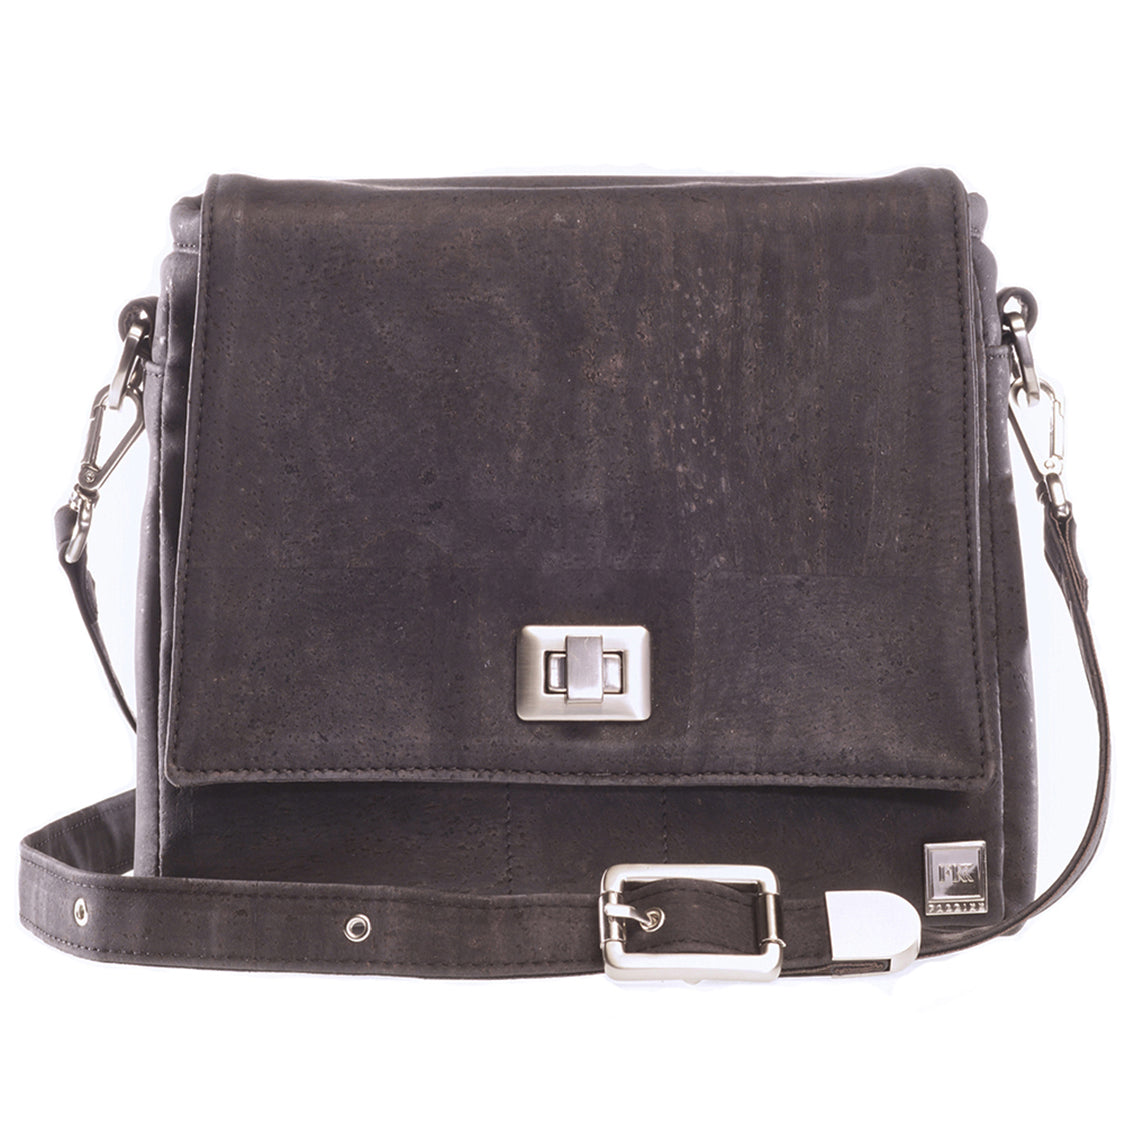 Vela | Coal Black Vegan Leather 'Cork' LED Handbag